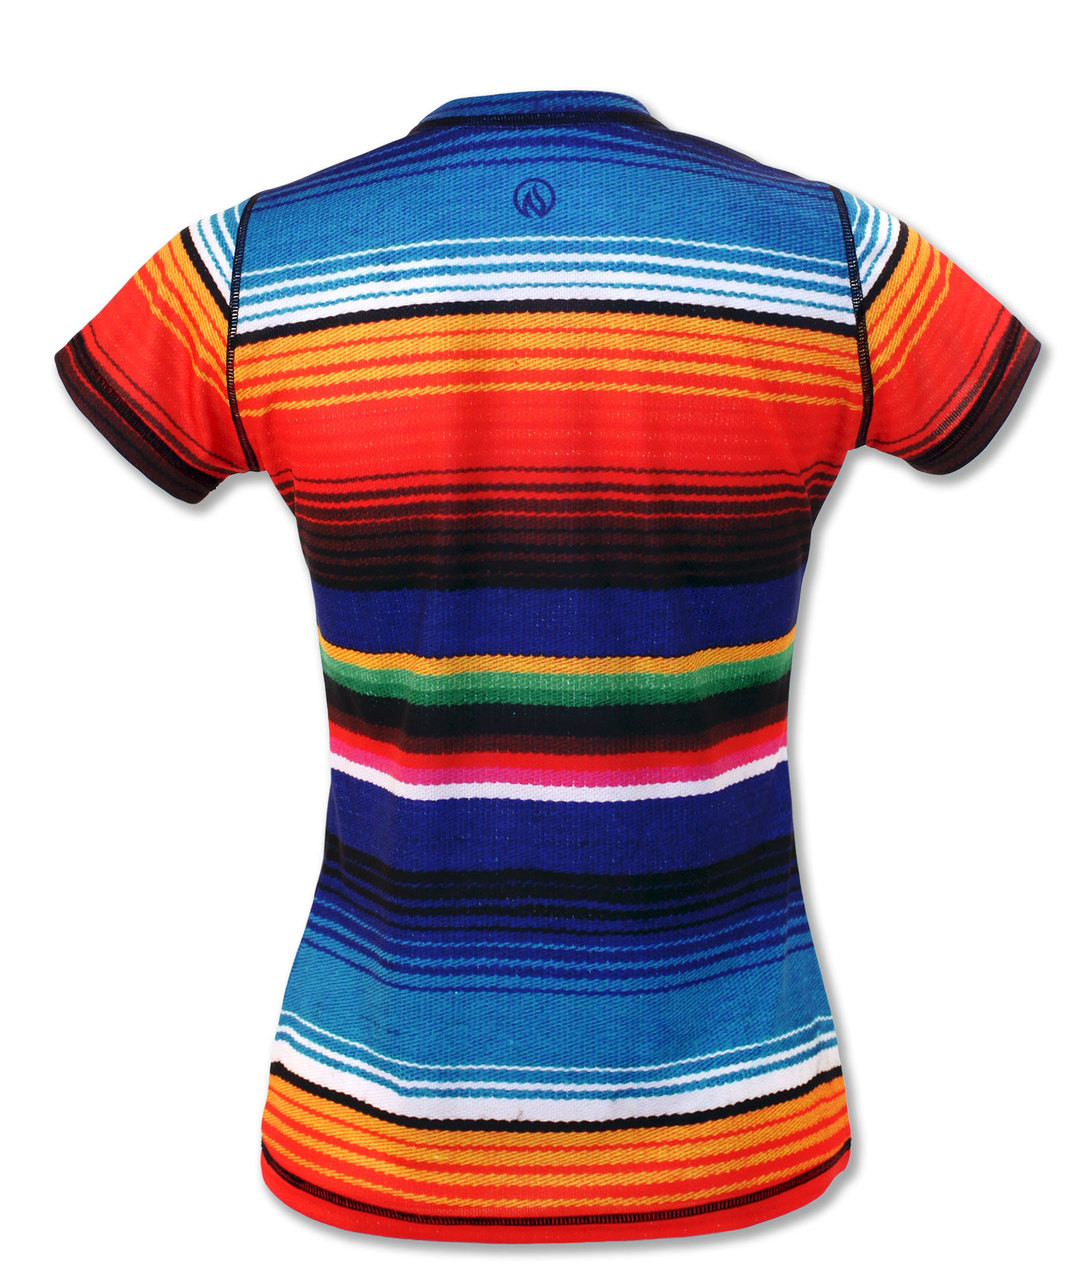 INKnBURN Women's Serape Tech Shirt Back